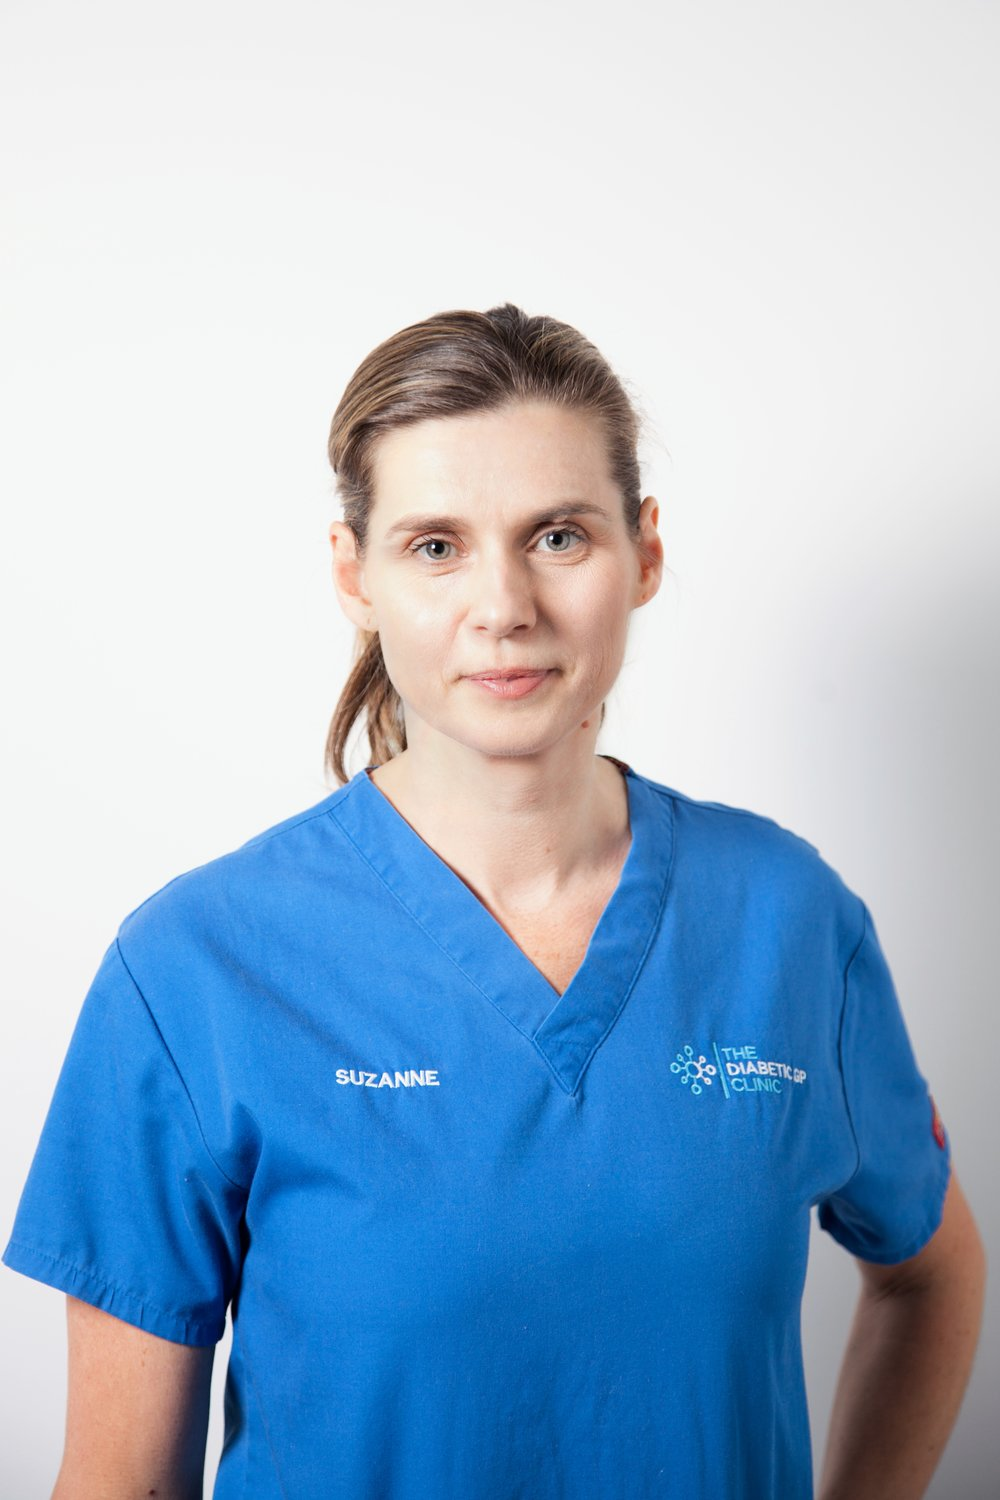 Our Nurse Suzanne Radford is also a credentialed diabetes educator based at The Diabetic GP medical centre in Hyde Park, Townsville.